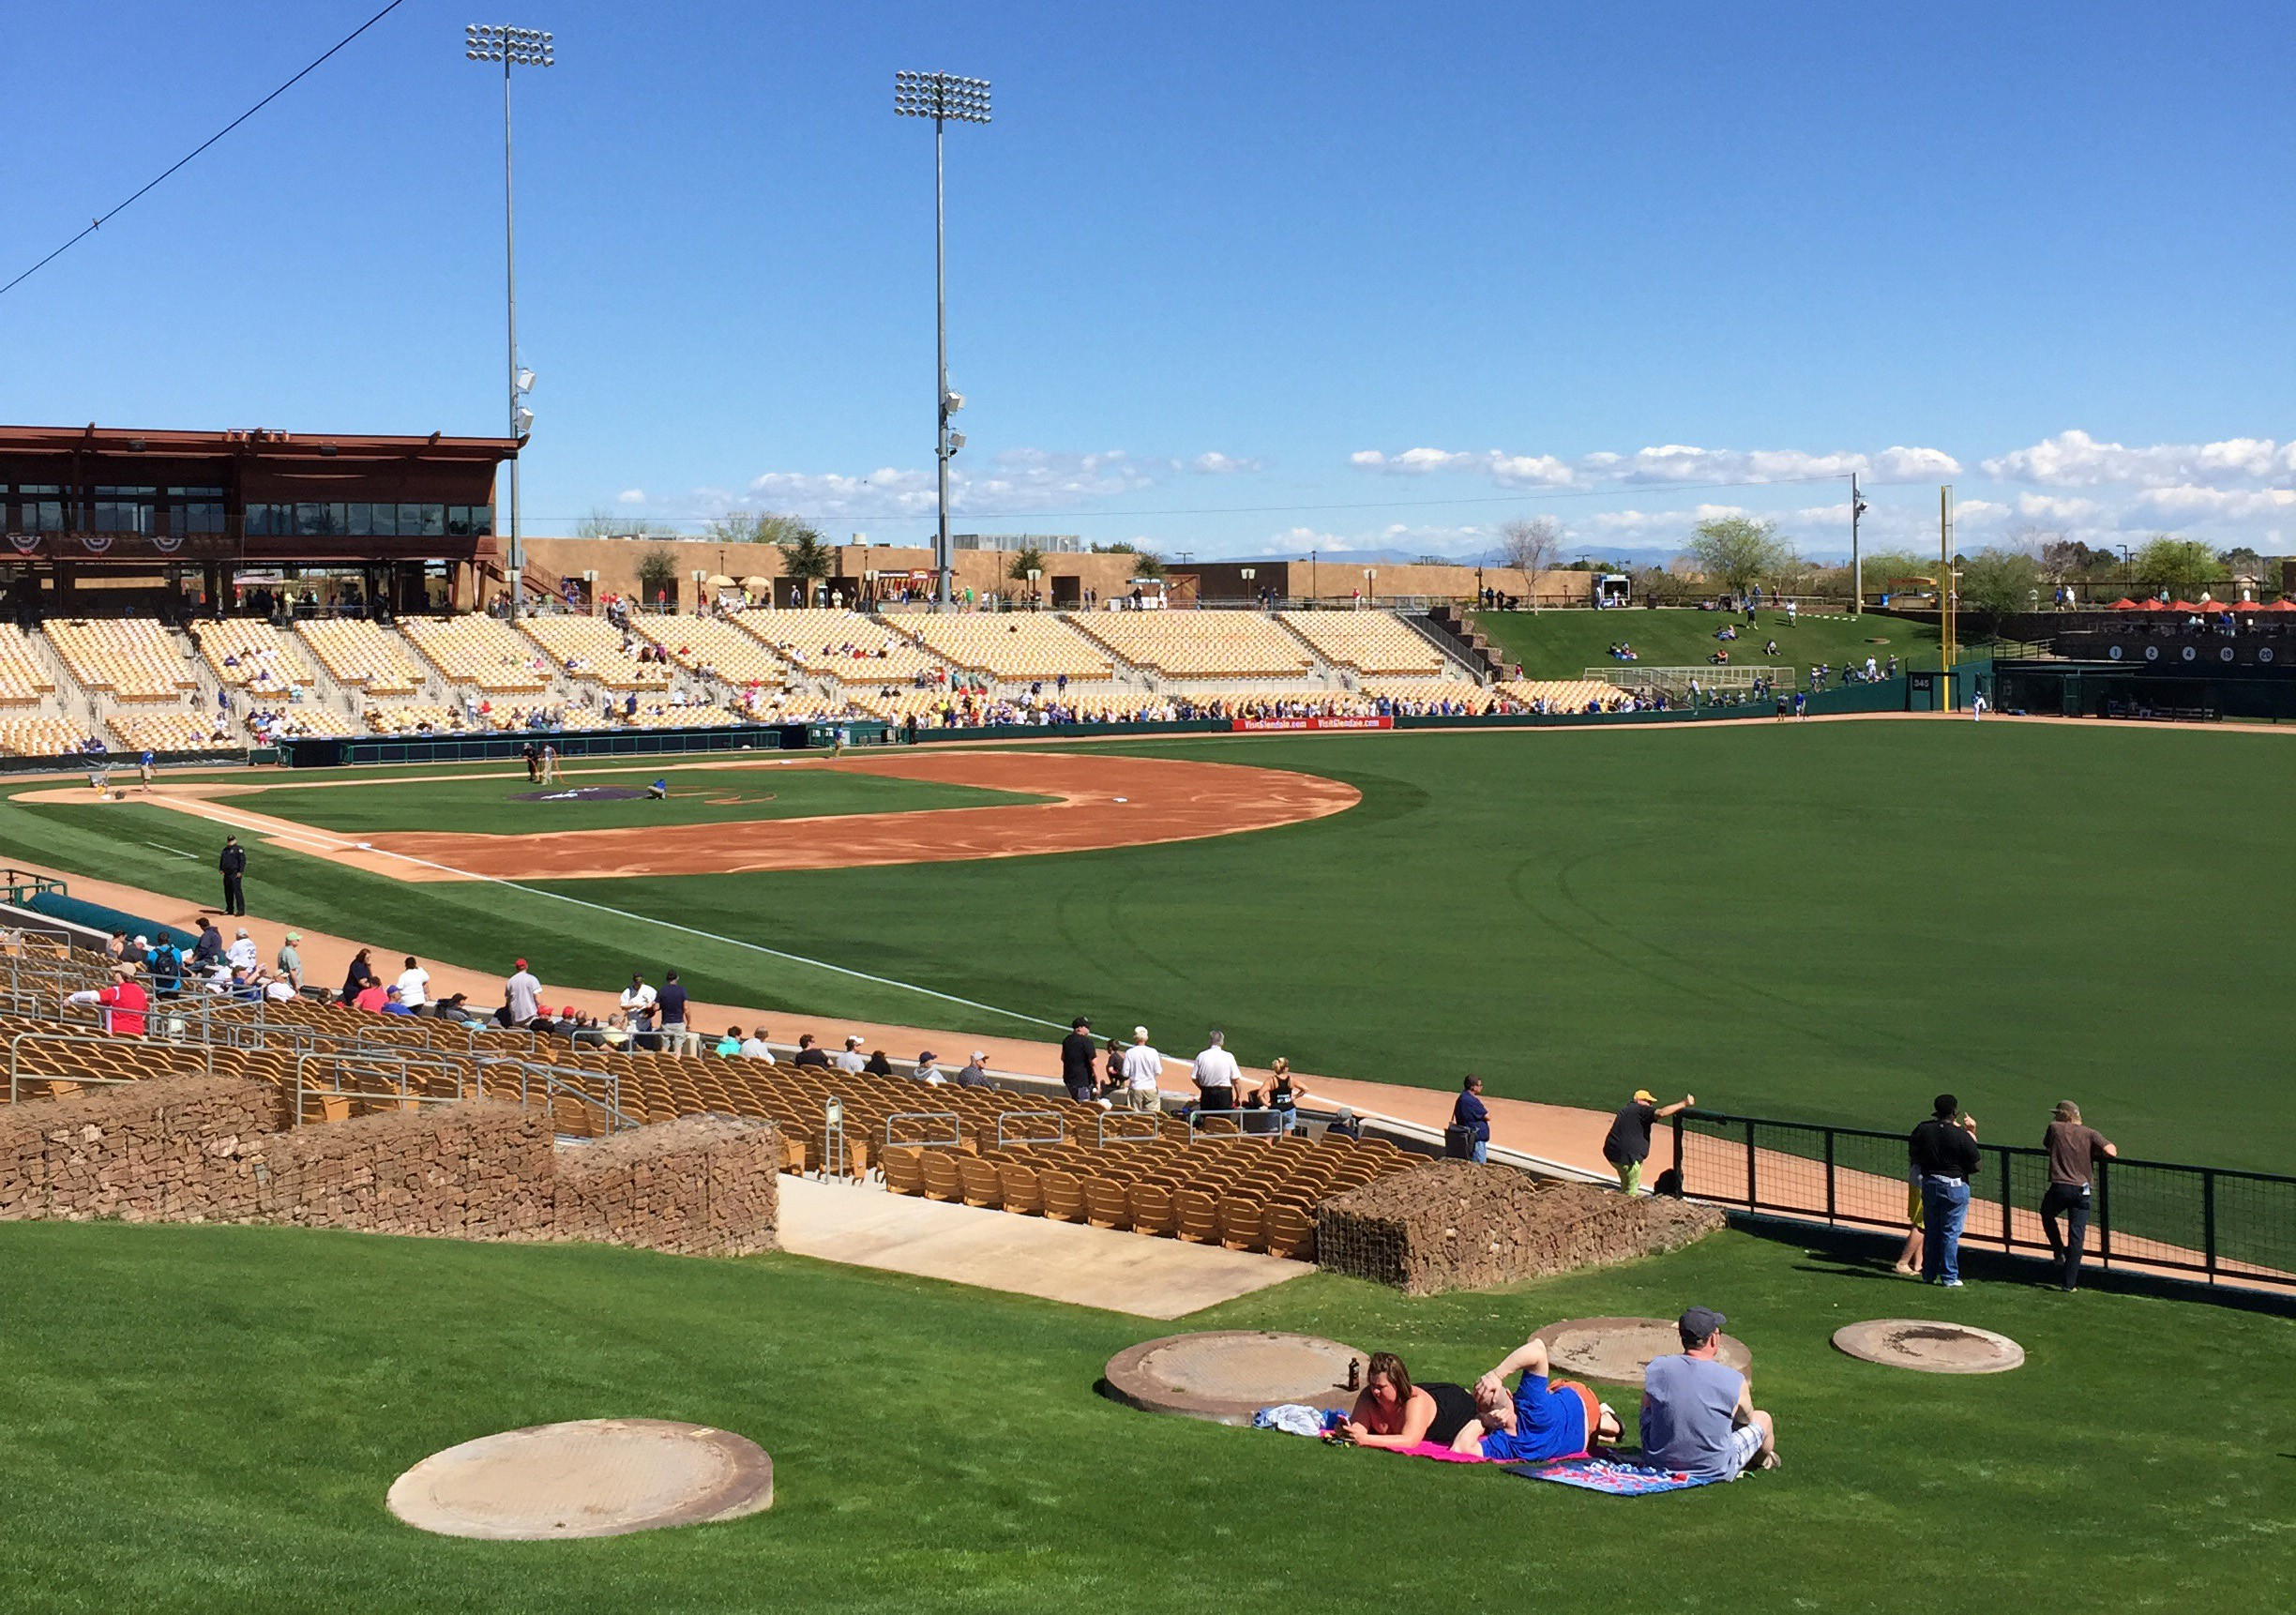 Camelback Ranch has been the spring training home of the Los Angeles Dodgers and Chicago White Sox since in opened in 2009.